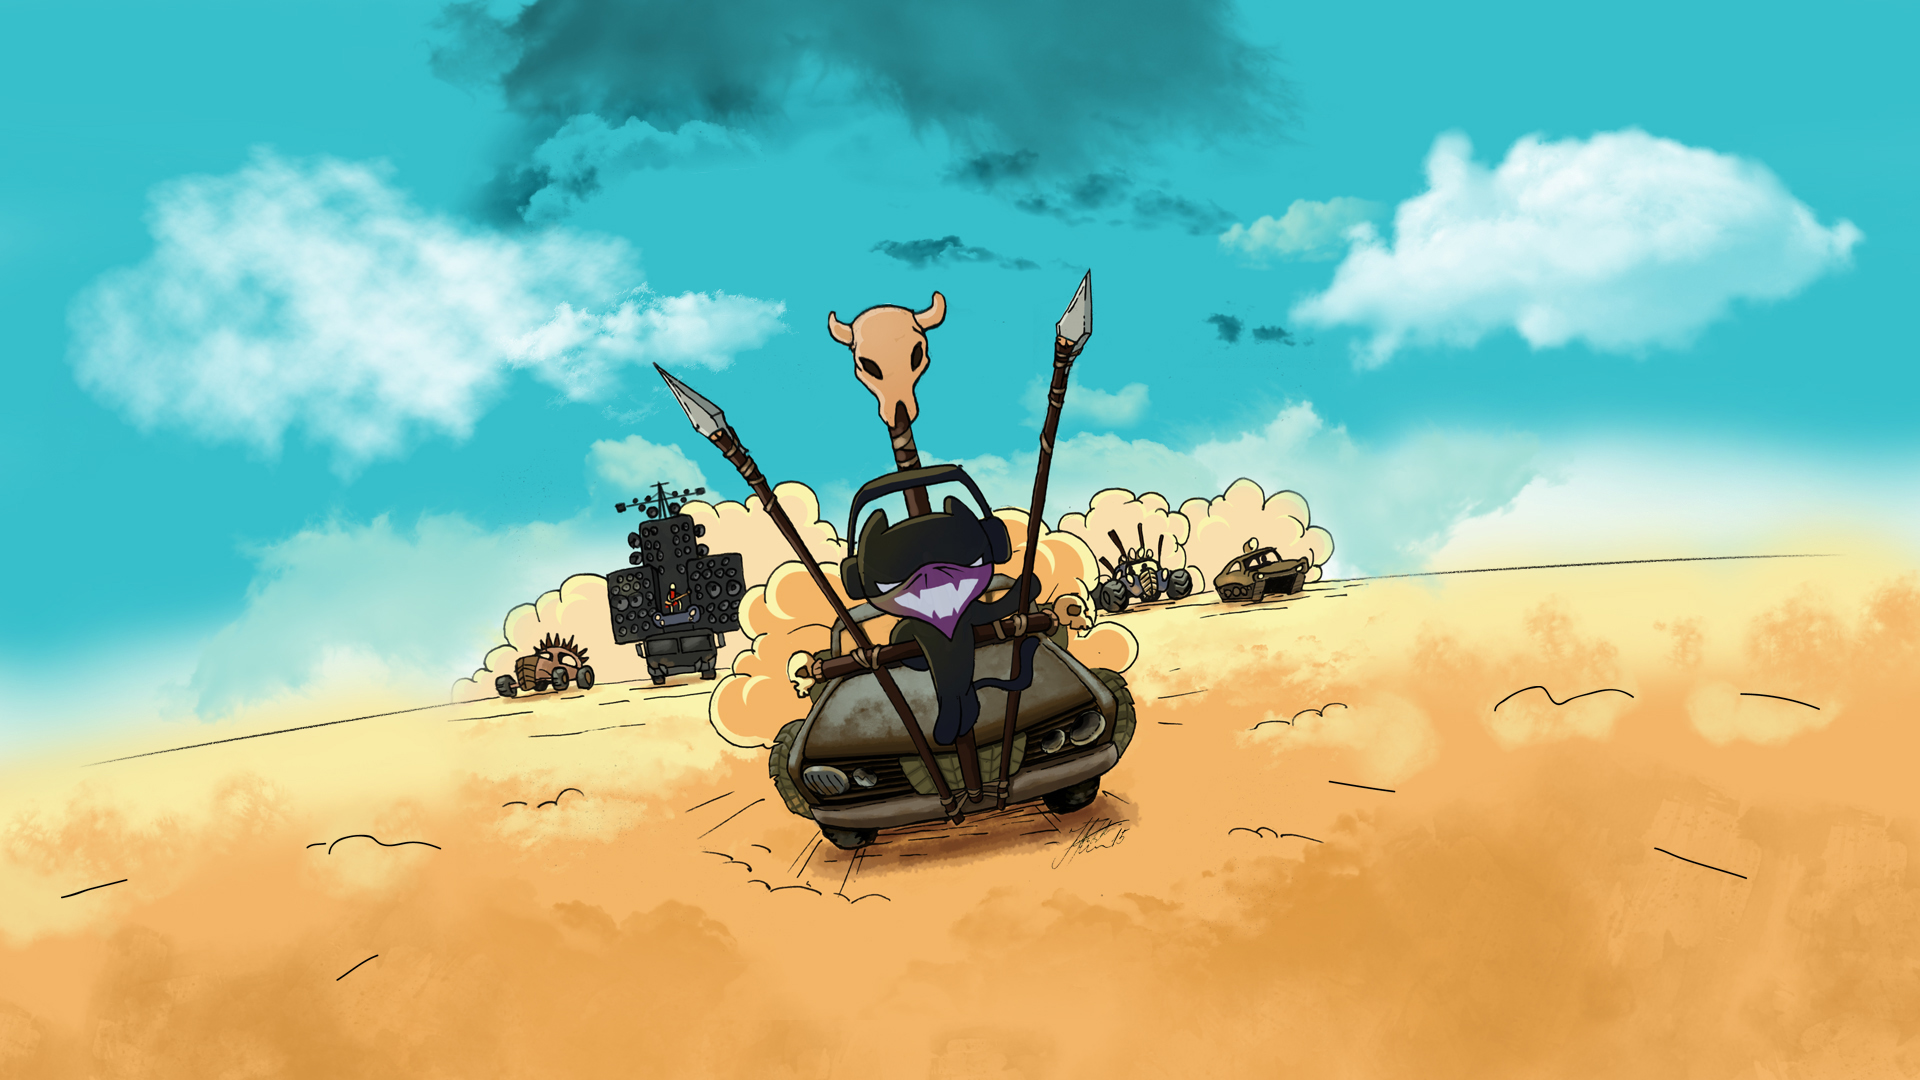 Monstercat Mad Cat (Mad Max) Wallpaper by JovicaSmileski on